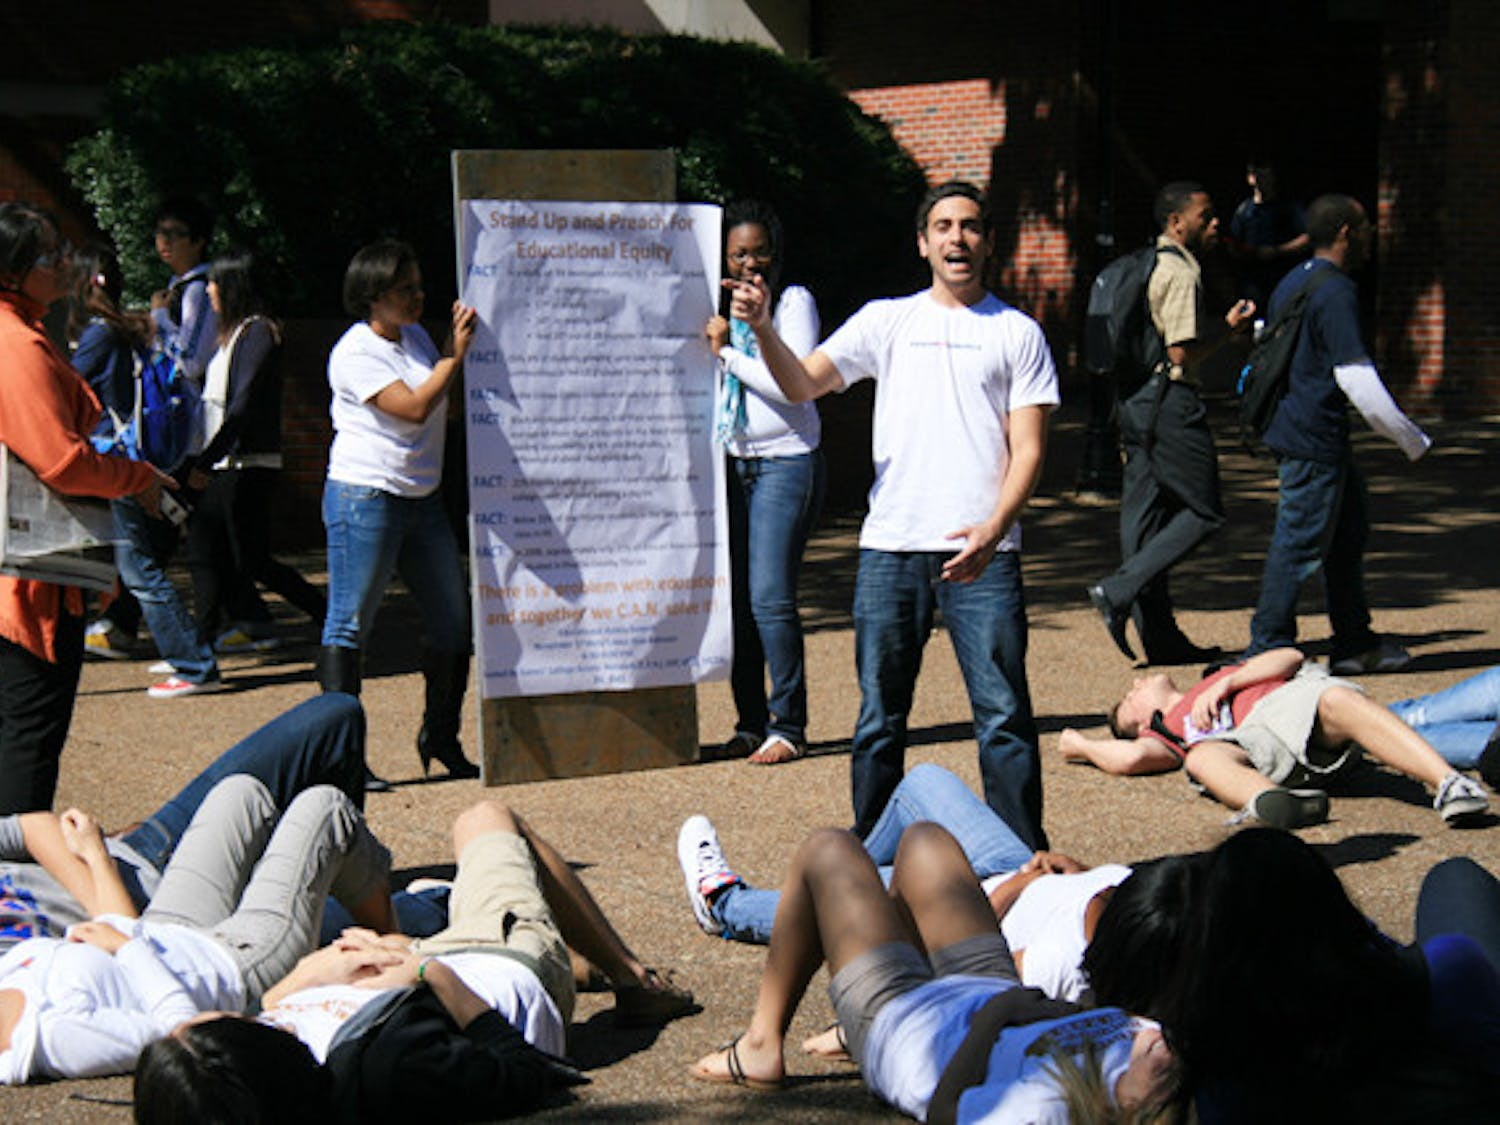 About 15 students drop down onto the pavement in the middle of Turlington Plaza on Tuesday afternoon, representing the students who drop out of high school every 26 seconds in the U.S. Read the story at alligator.org.